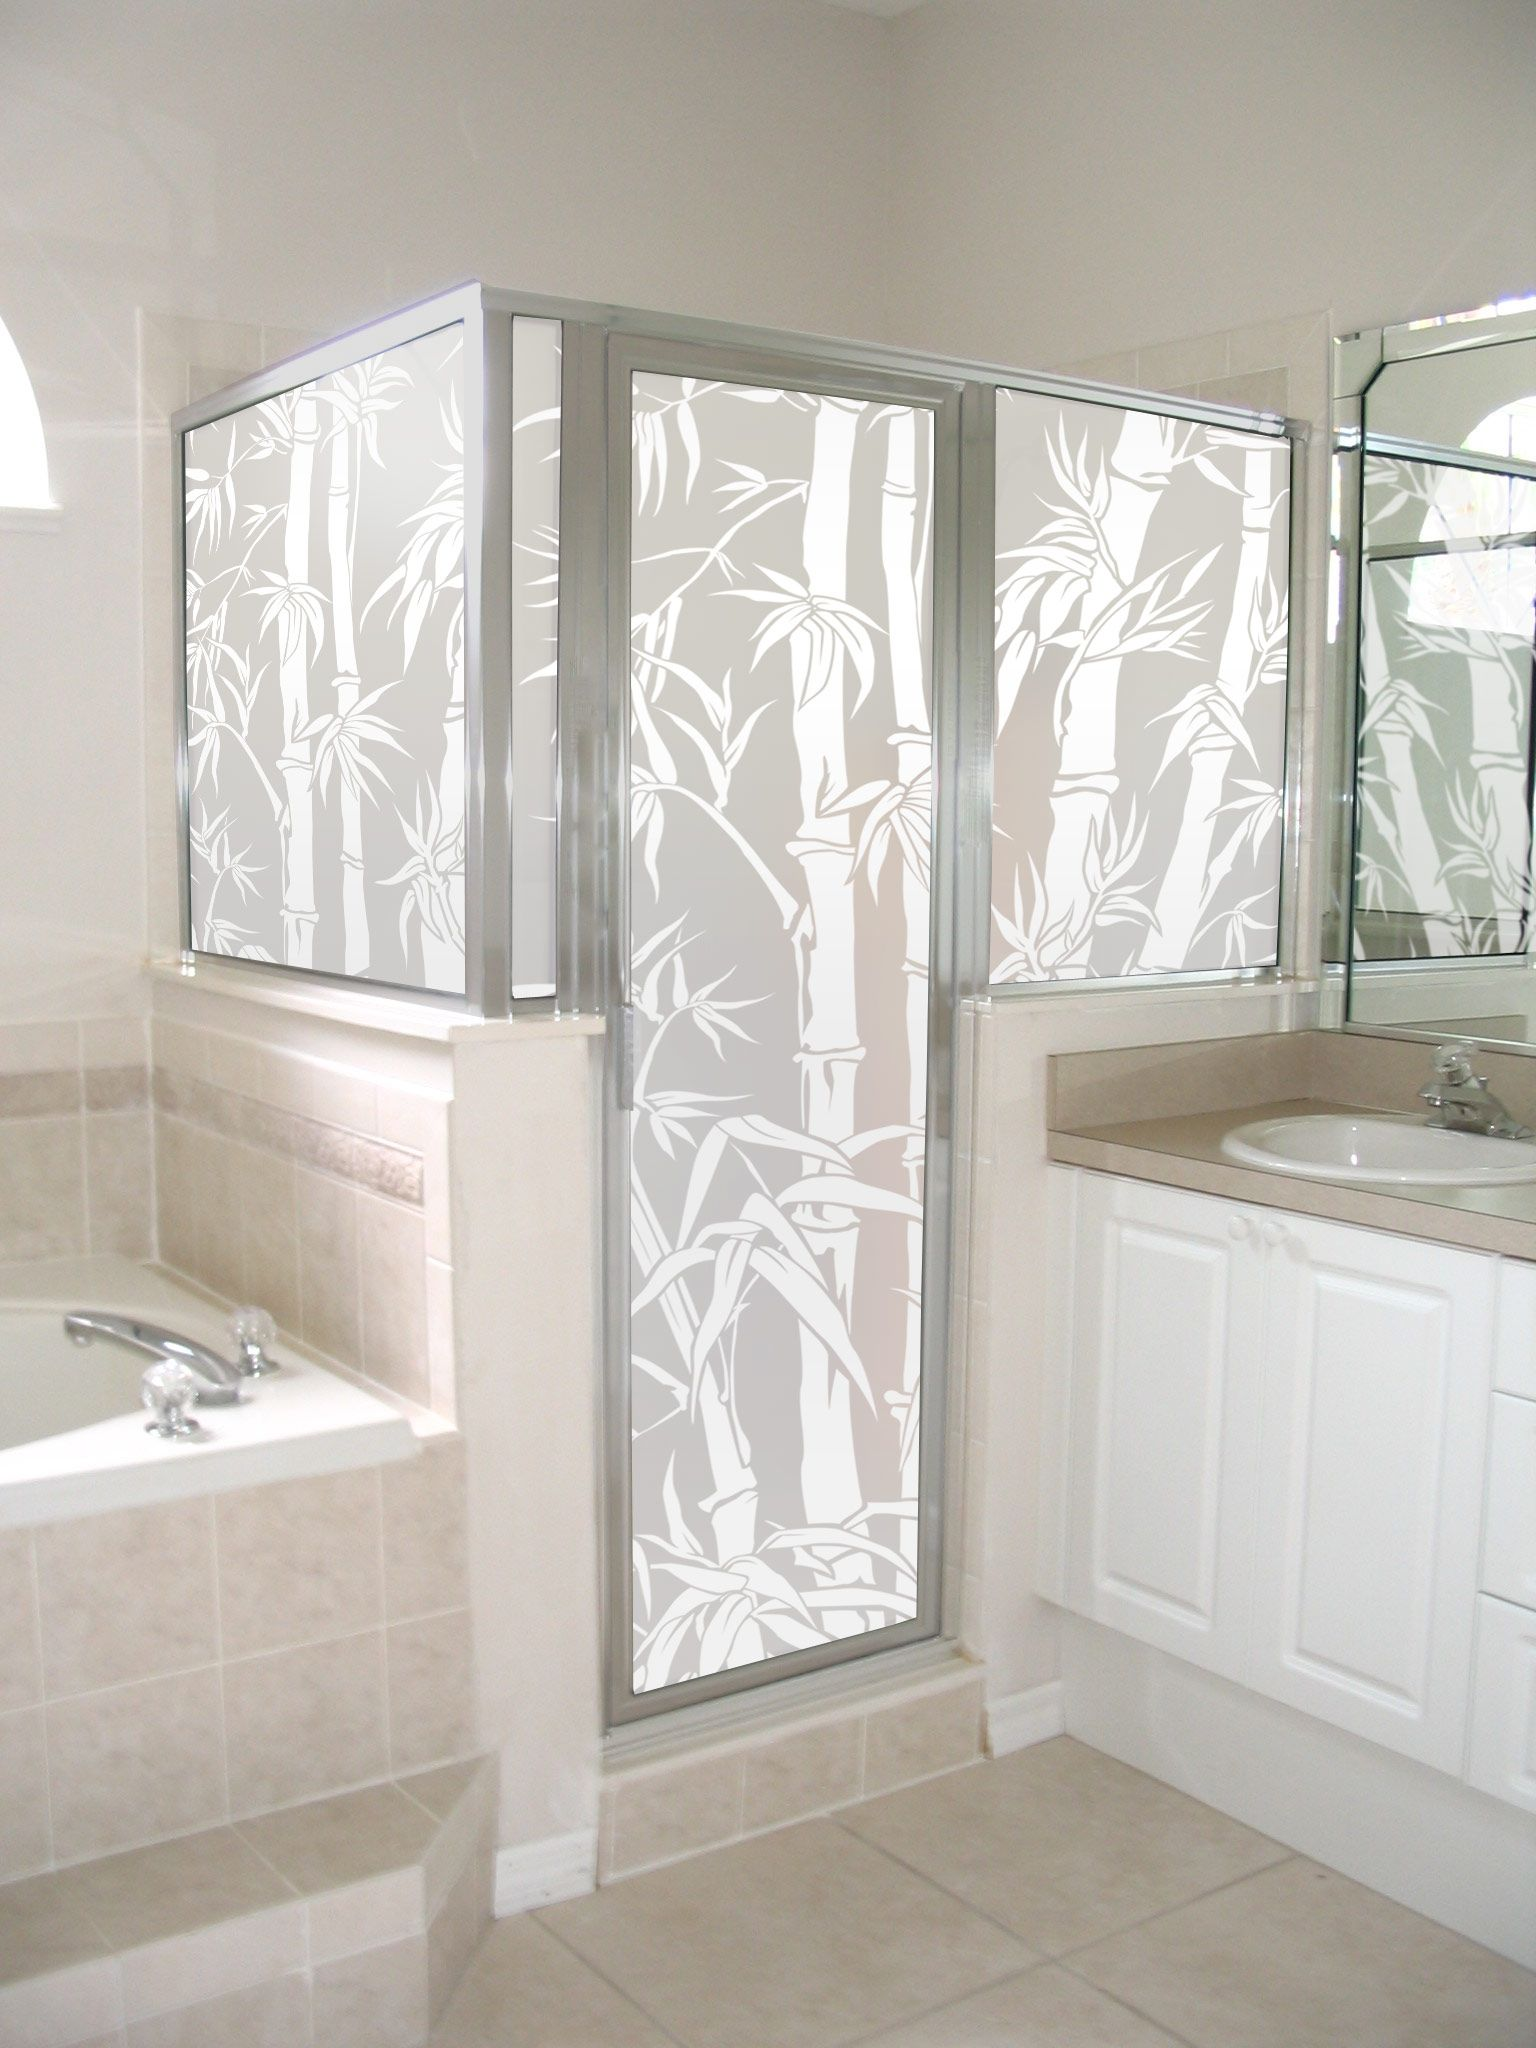 Etched glass doors privacy glass door inserts bamboo pictures to pin - Glass Doors Big Bamboo Privacy Film Shown On A Shower Enclosure